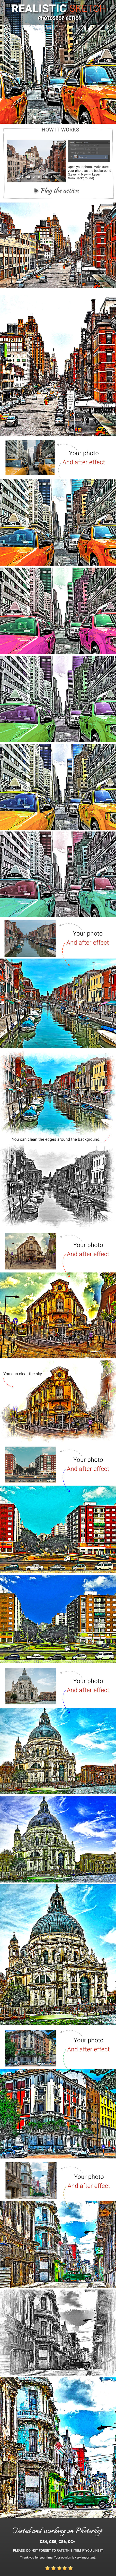 Realistic Sketch Photoshop Action - Photo Effects Actions